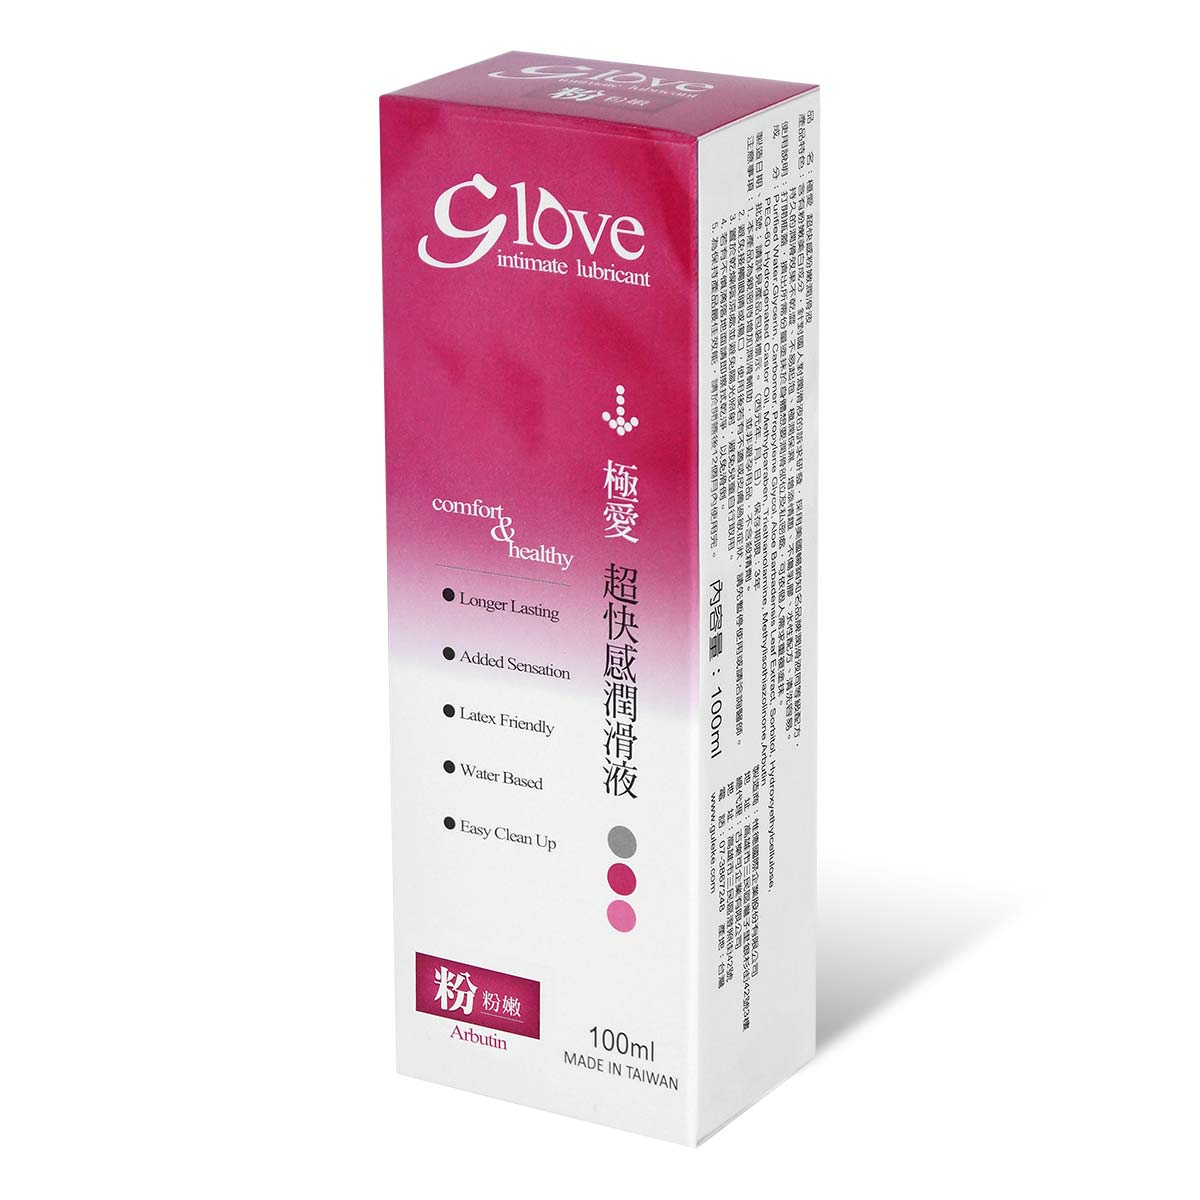 G Love intimate lubricant [Arbutin] 100ml Water-based Lubricant